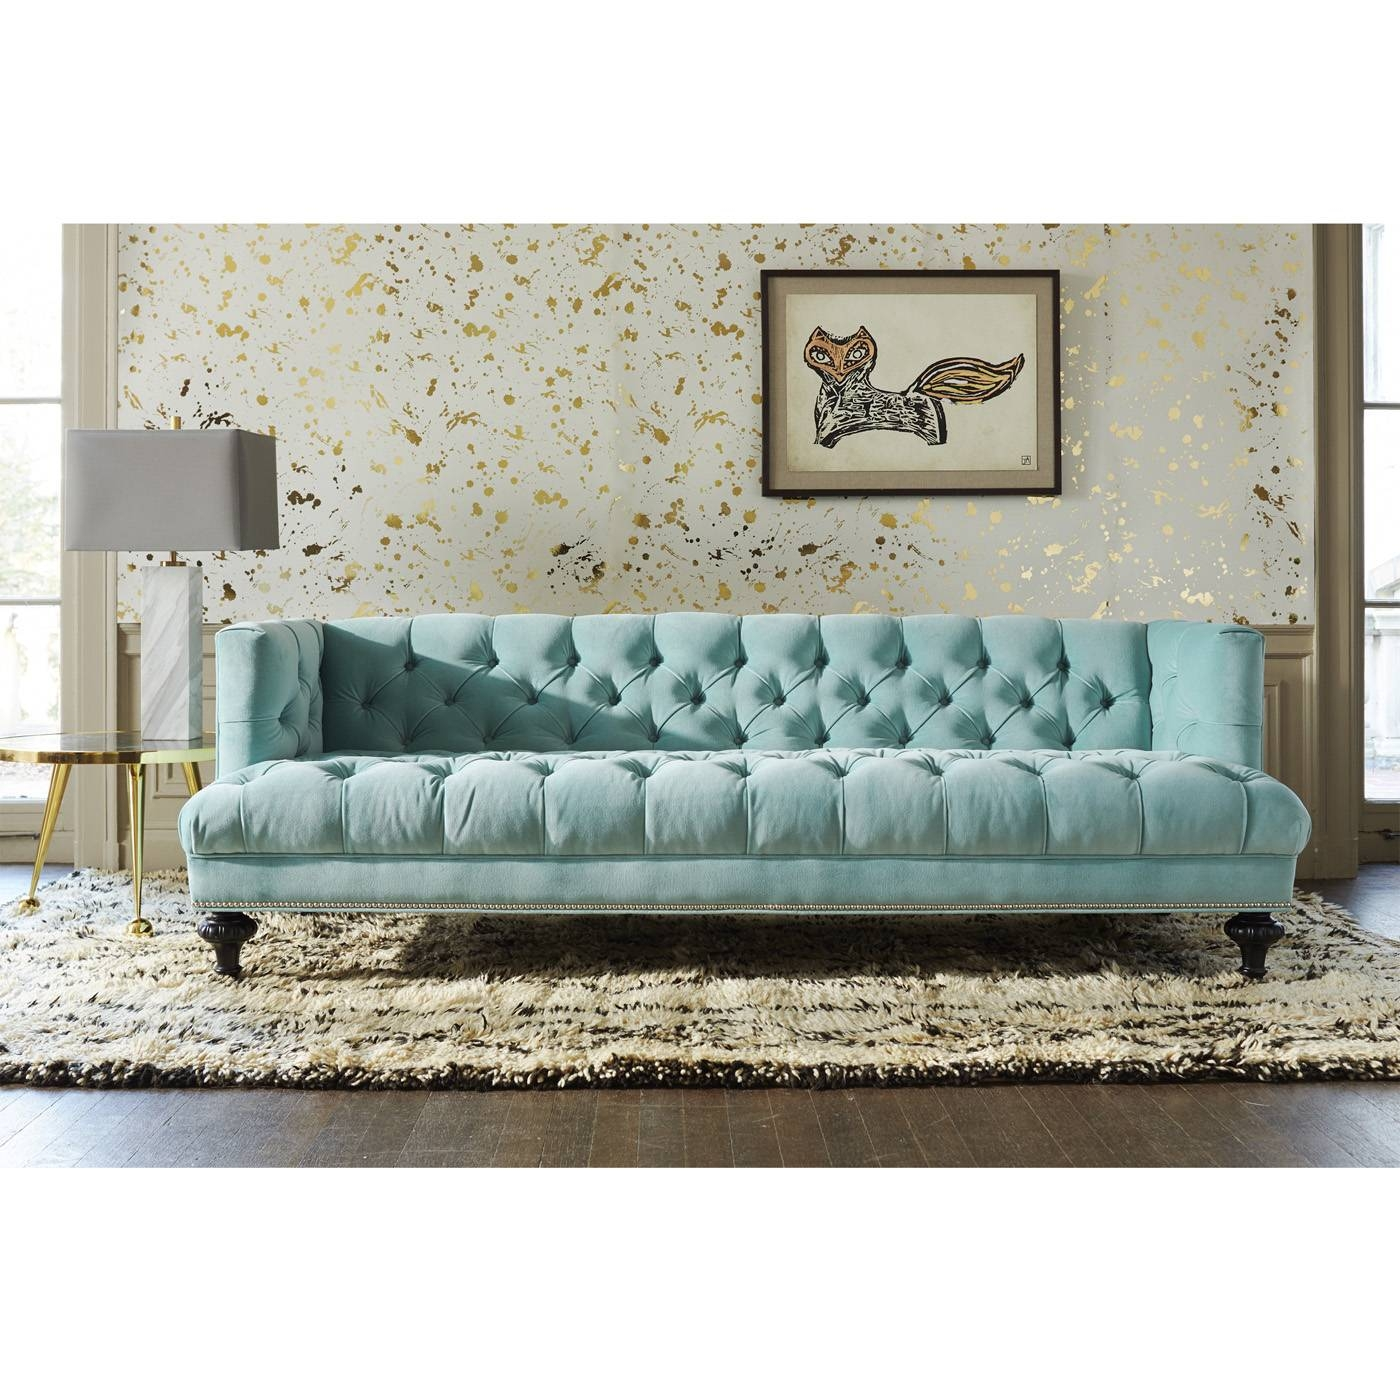 Baxter T-Arm Sofa | Modern Furniture | Jonathan Adler with regard to Jonathan Sofa (Image 3 of 25)